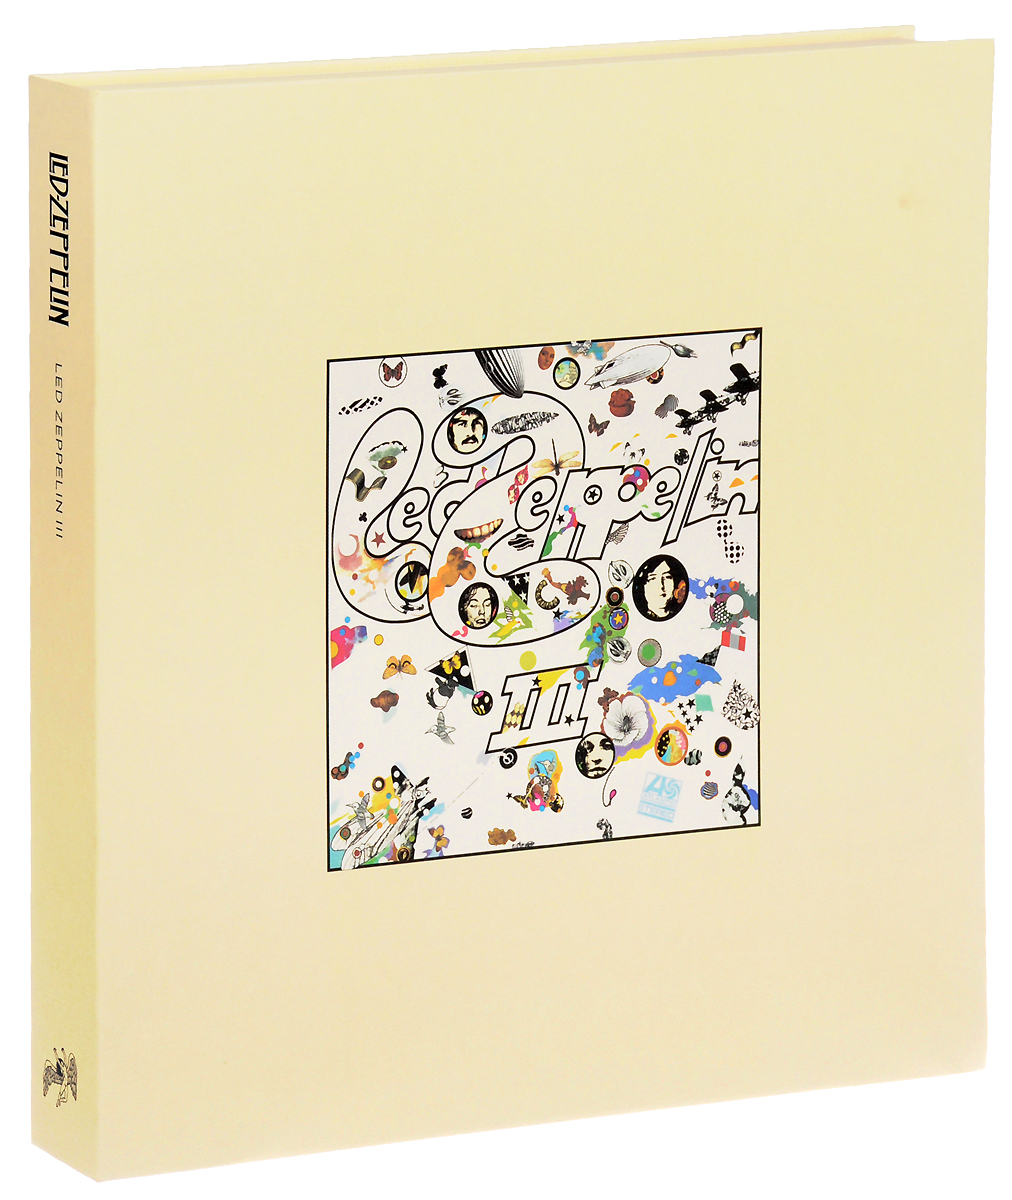 Led Zeppelin Led Zeppelin. Led Zeppelin III. Super Deluxe Edition (2 LP + 2 CD) led zeppelin led zeppelin i deluxe edition 3 lp